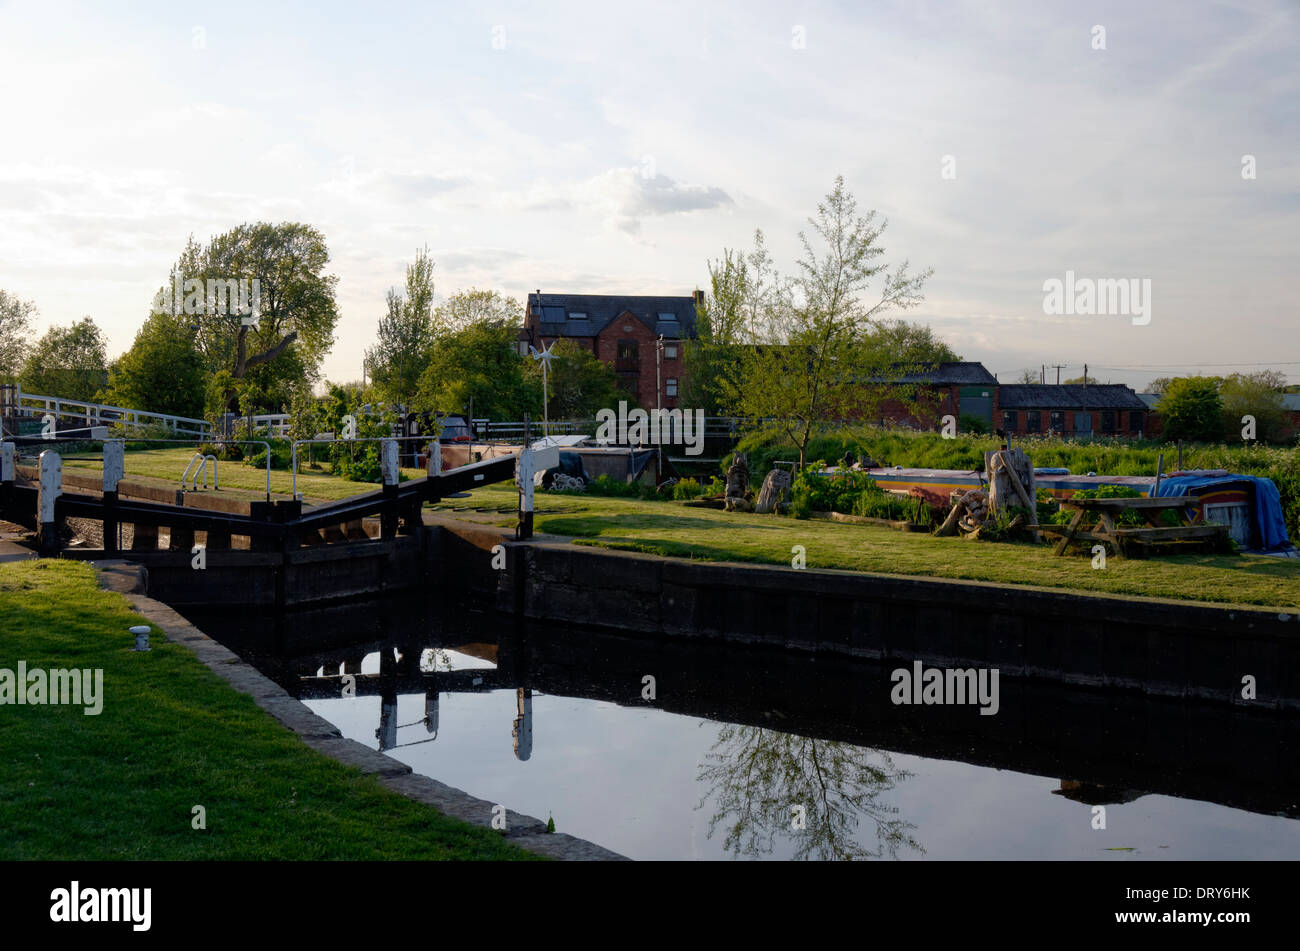 Lock Gates at Sileby, Leicestershire on the River Soar - Stock Image